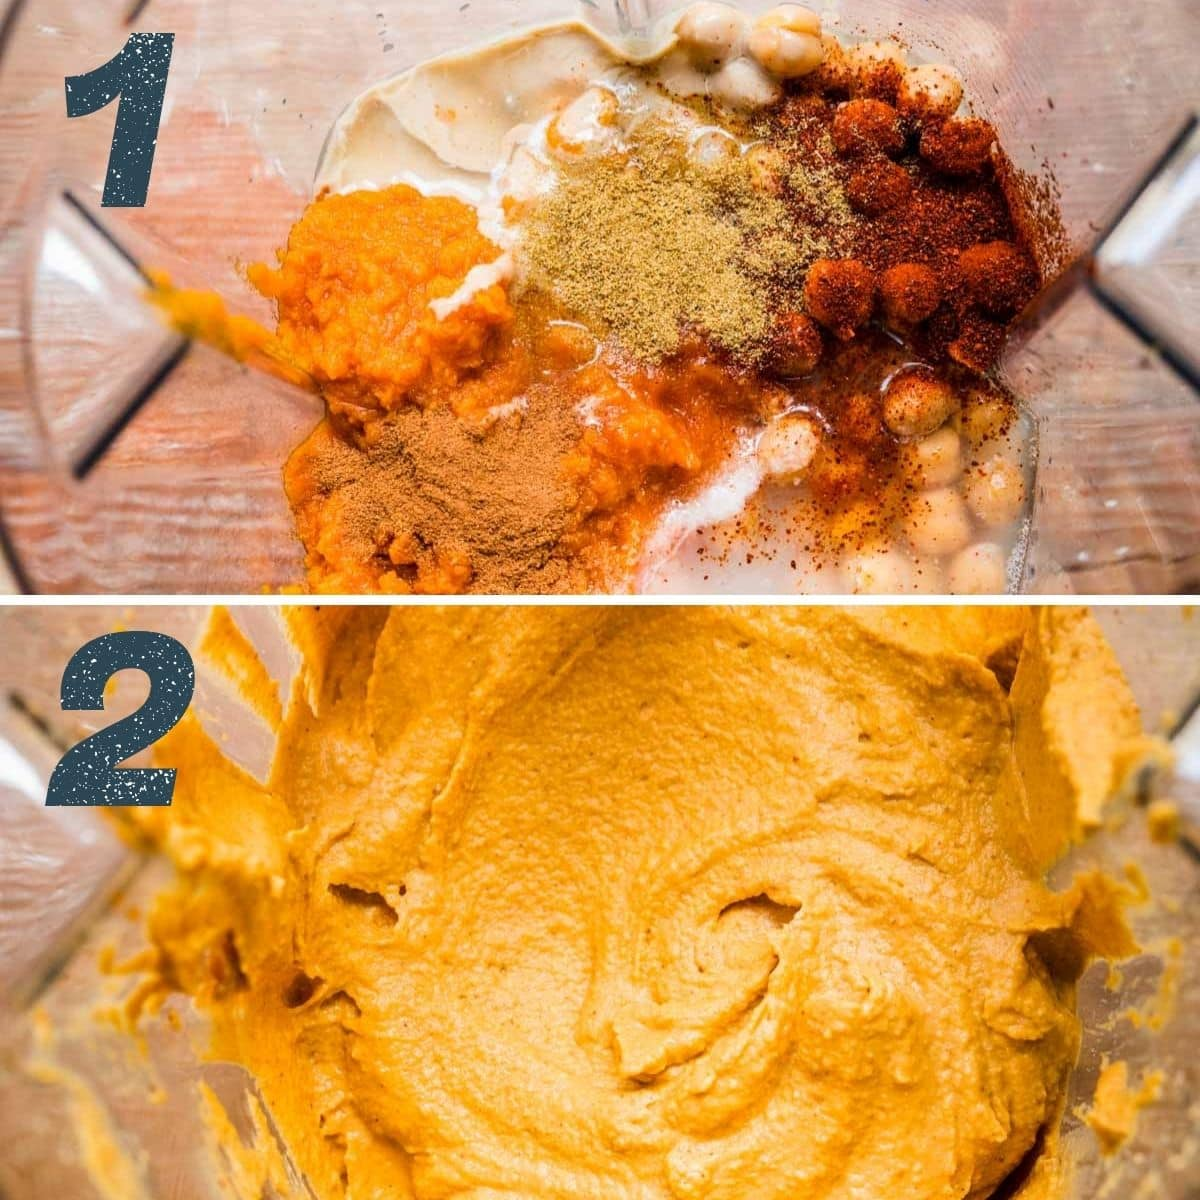 On the top: ingredients added to blender. On the bottom: ingredients after blending.